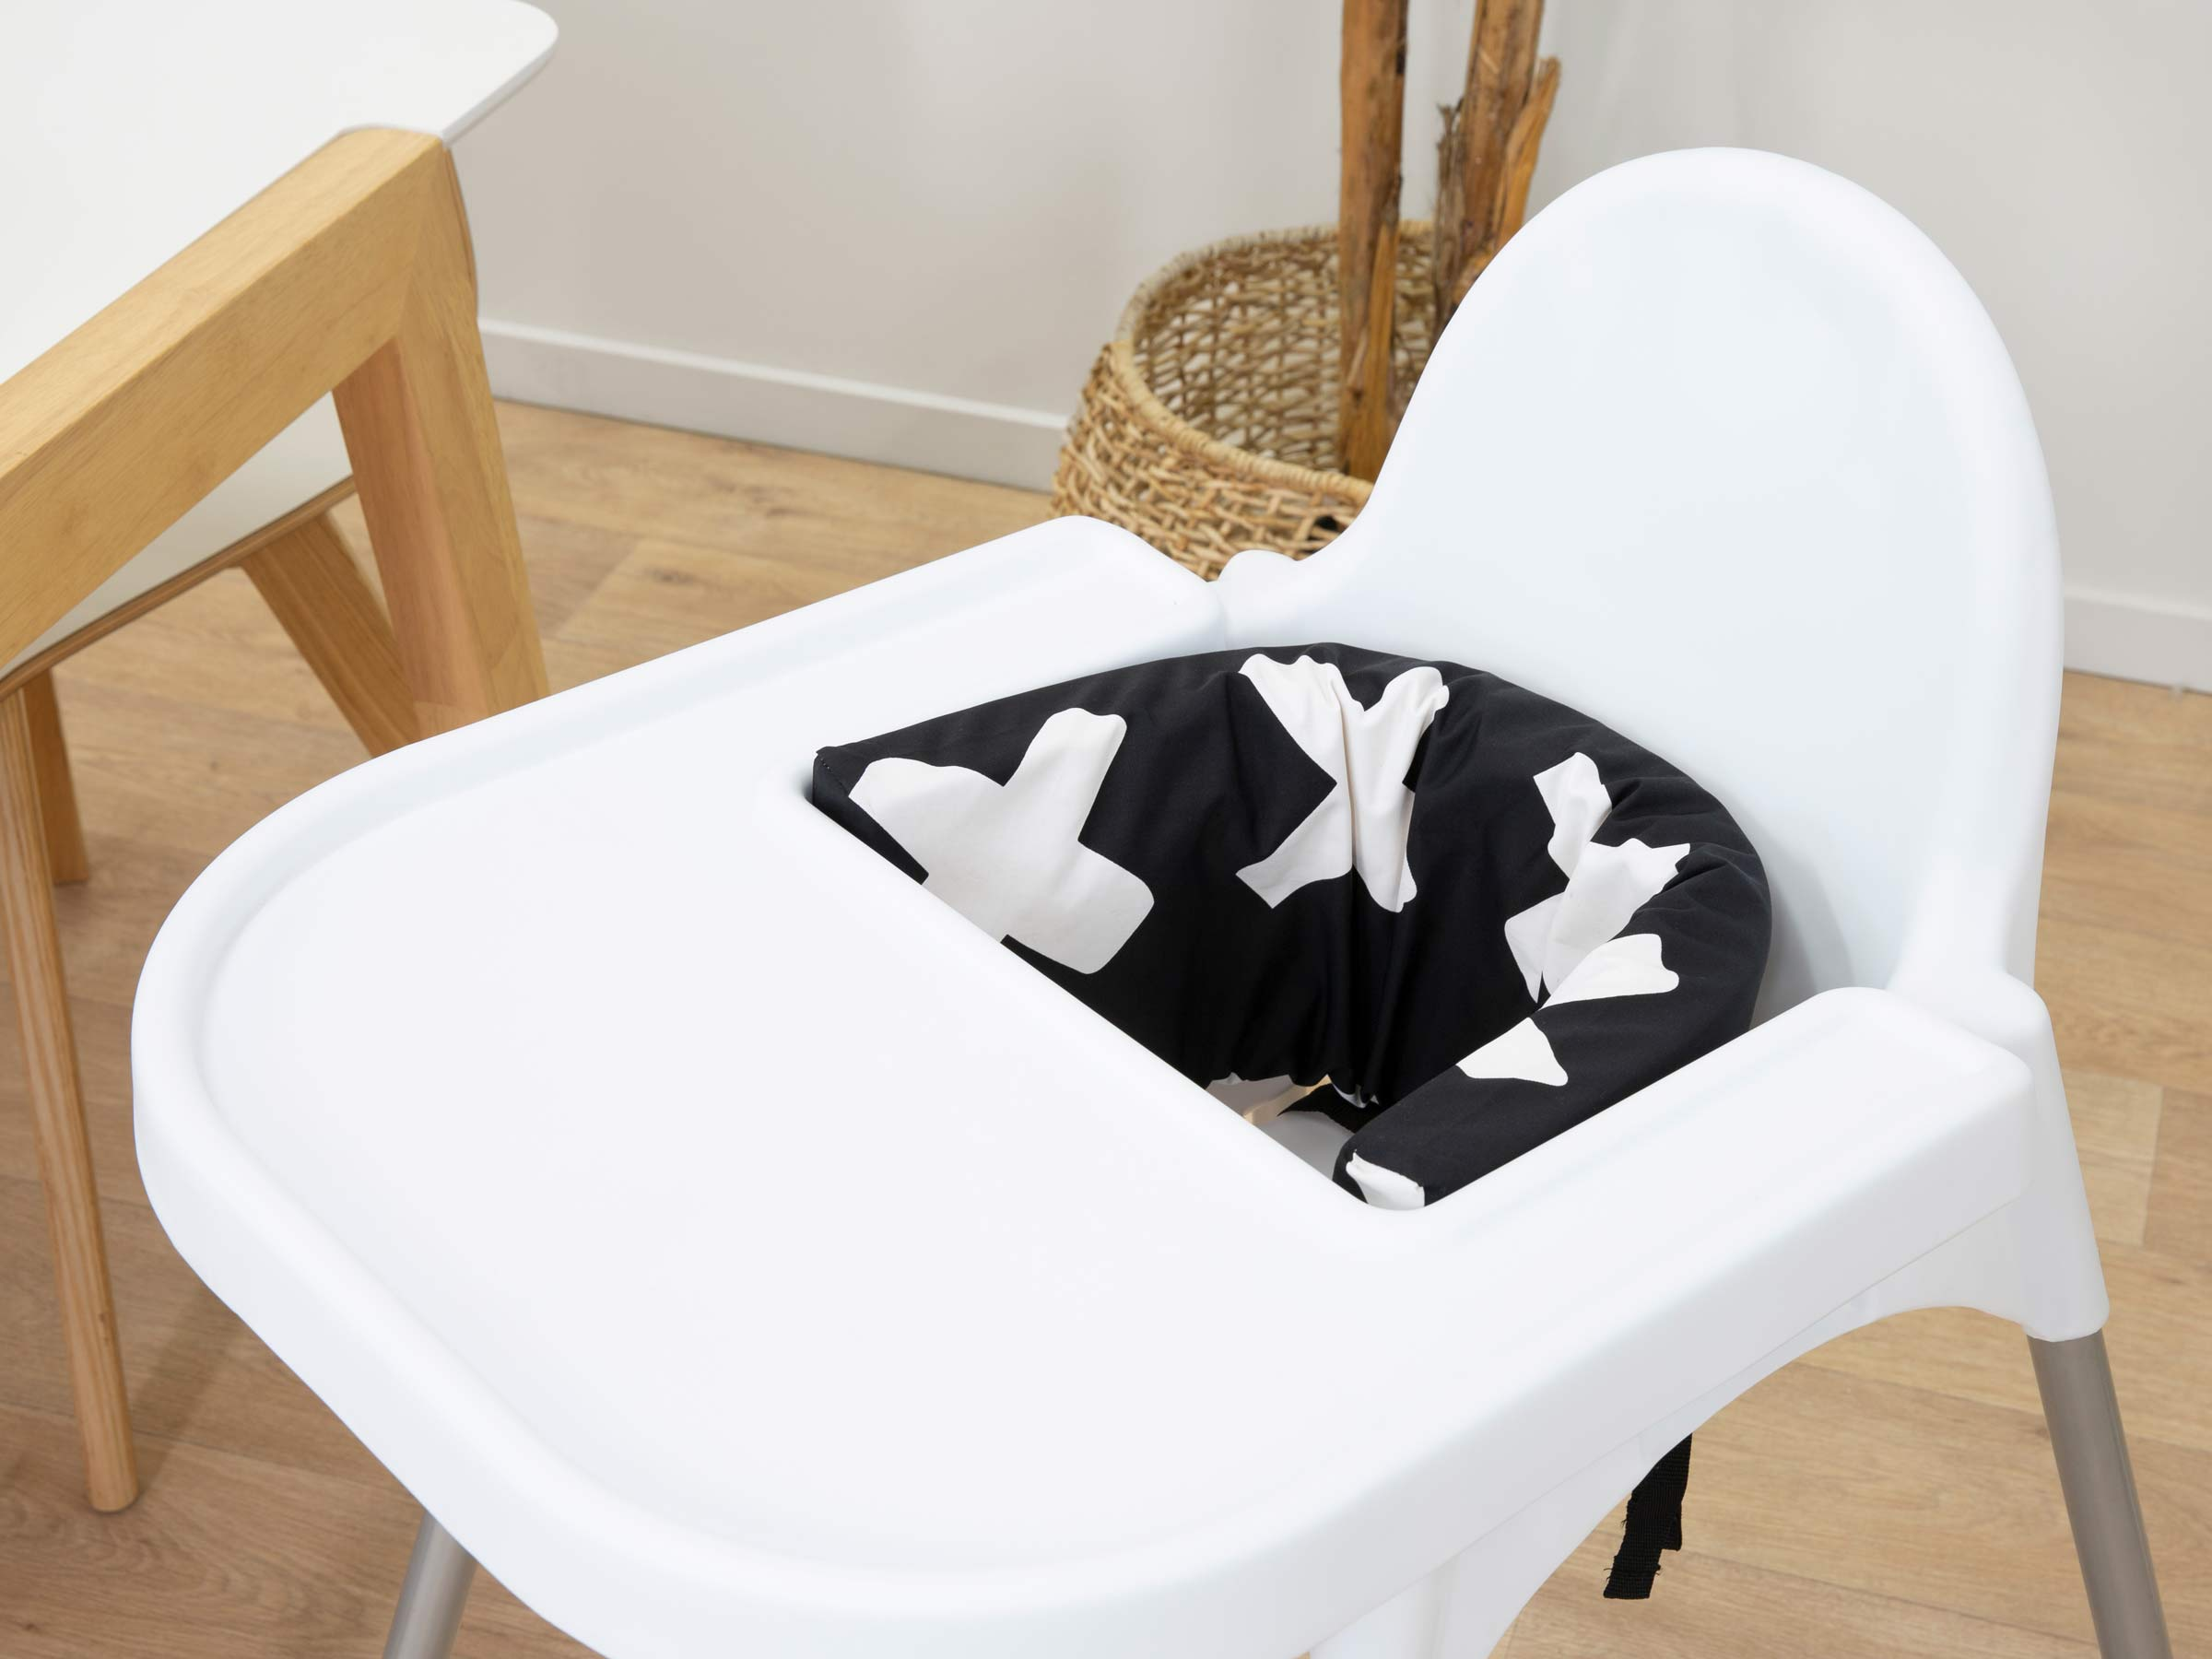 Designer Highchair Insert Cover - Monochrome Cross